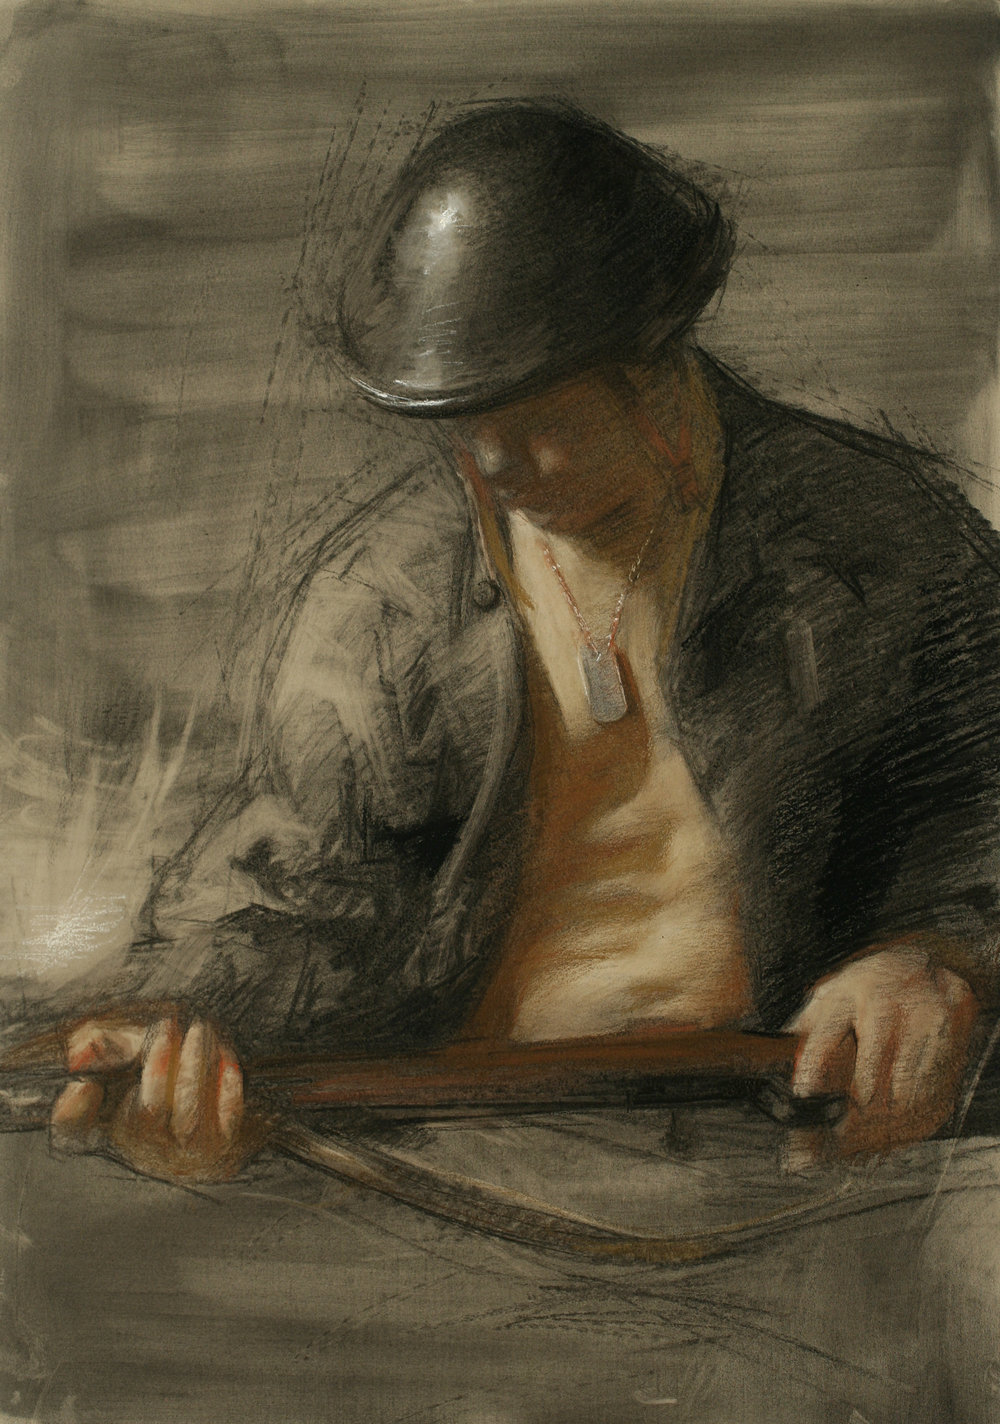 Juliette Aristides_The Call_21.5x18_Charcoal with Sepia and White Chalk on Toned Paper__2011.jpg